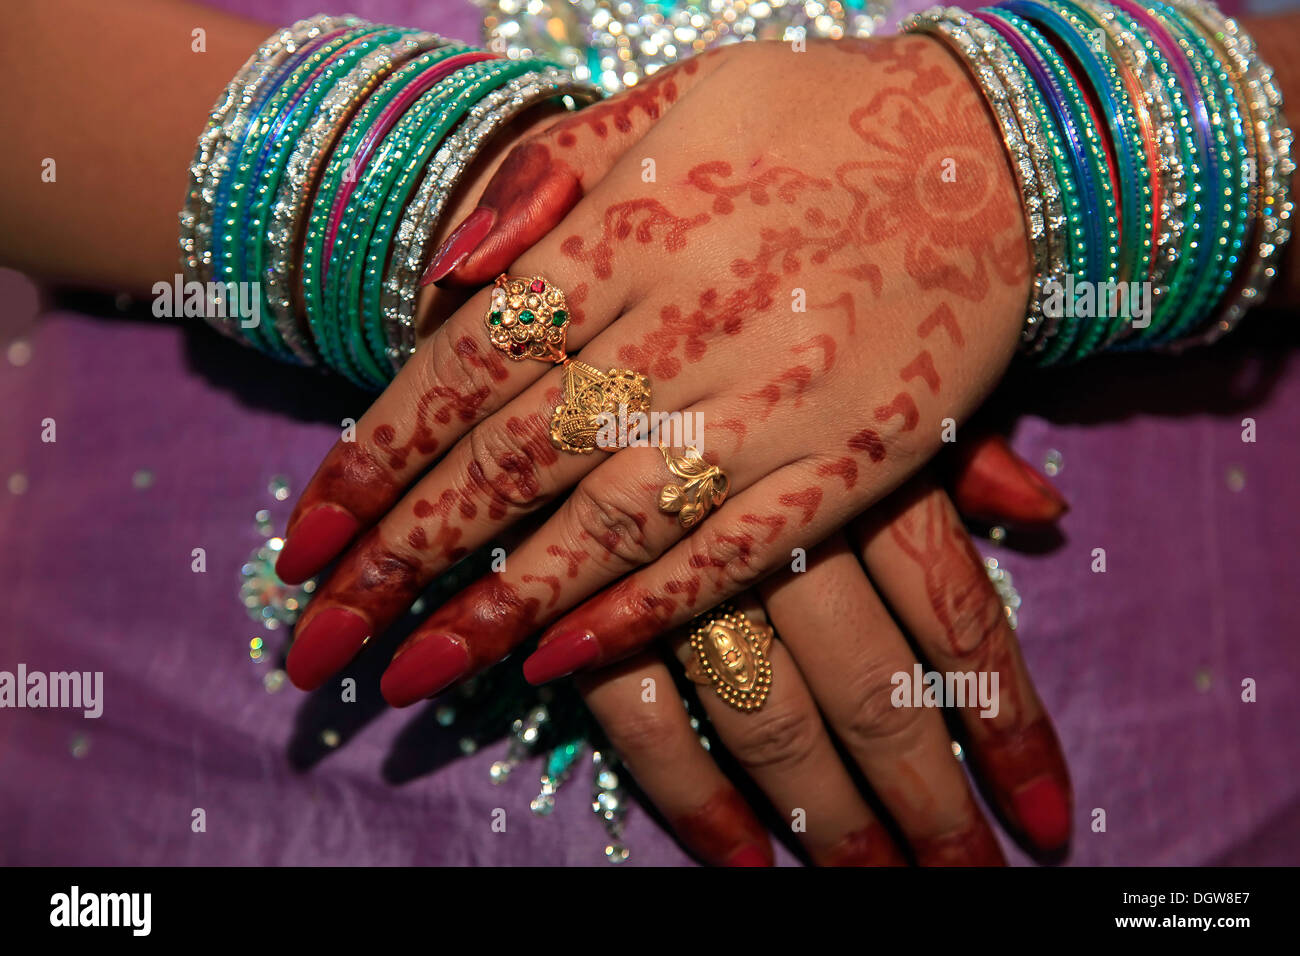 Woman hand with colorful bangles Stock Photo: 62021071 - Alamy